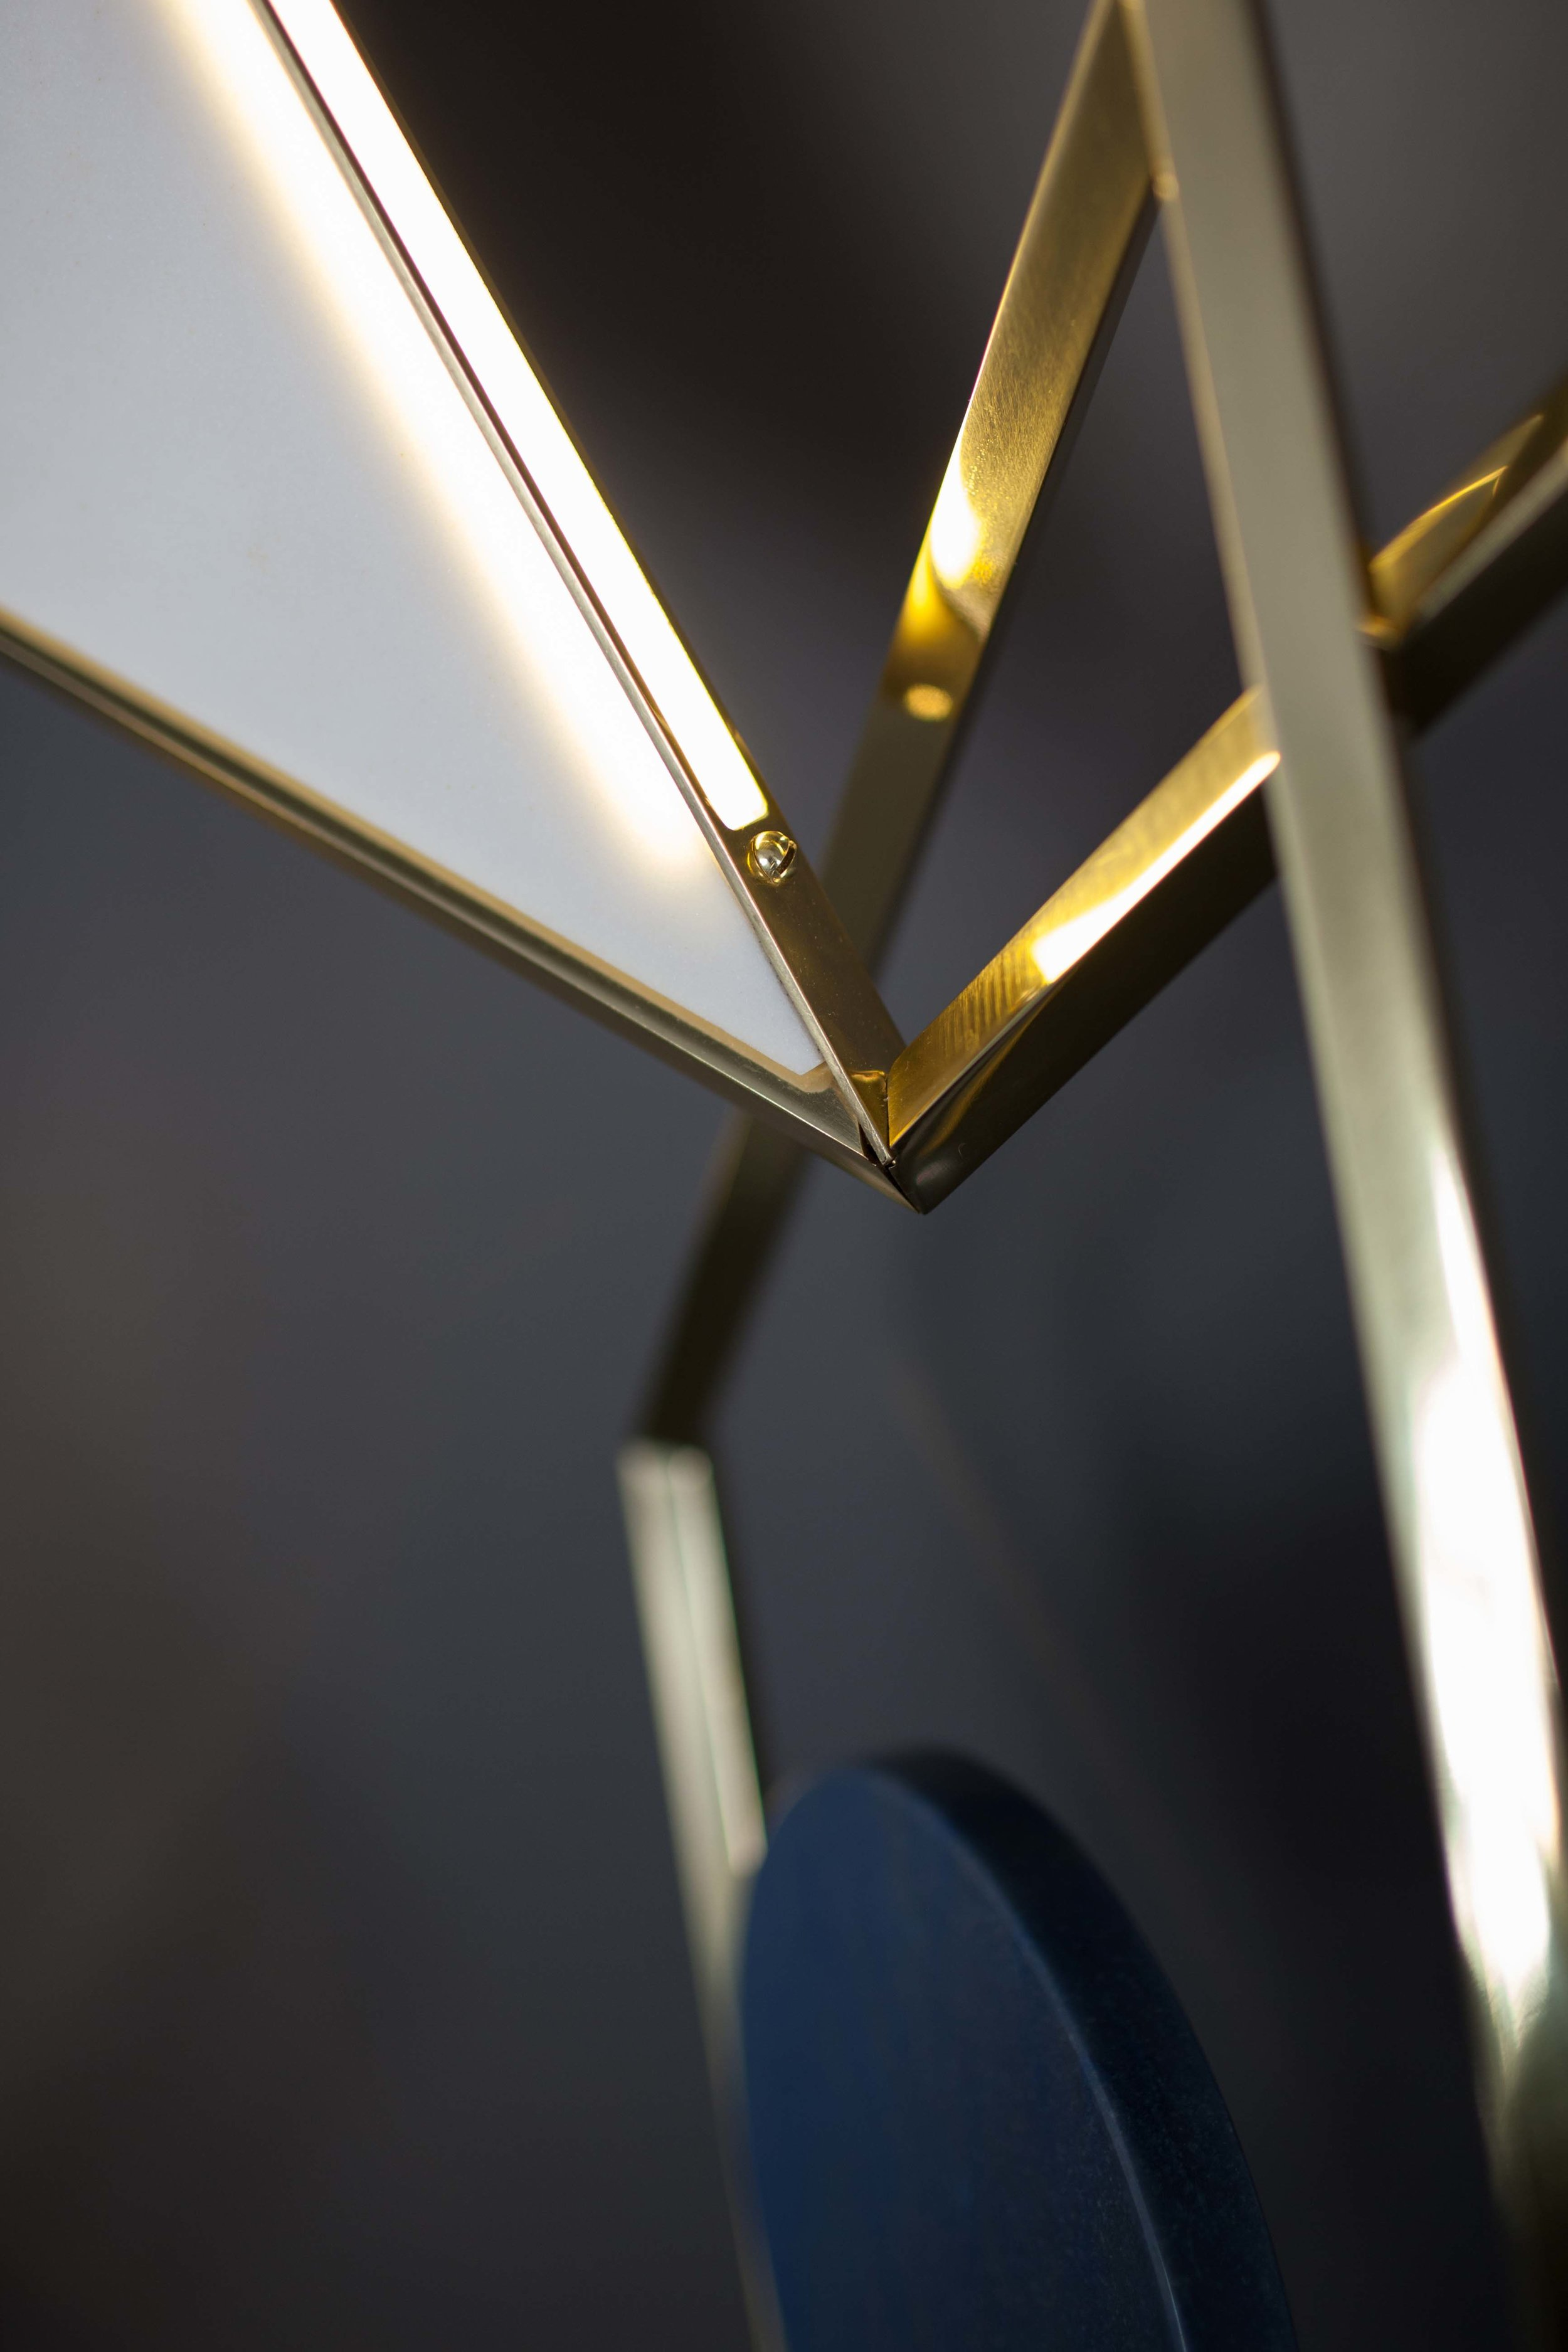 tangle-light_lighting-design_coordination-berlin_03.jpg